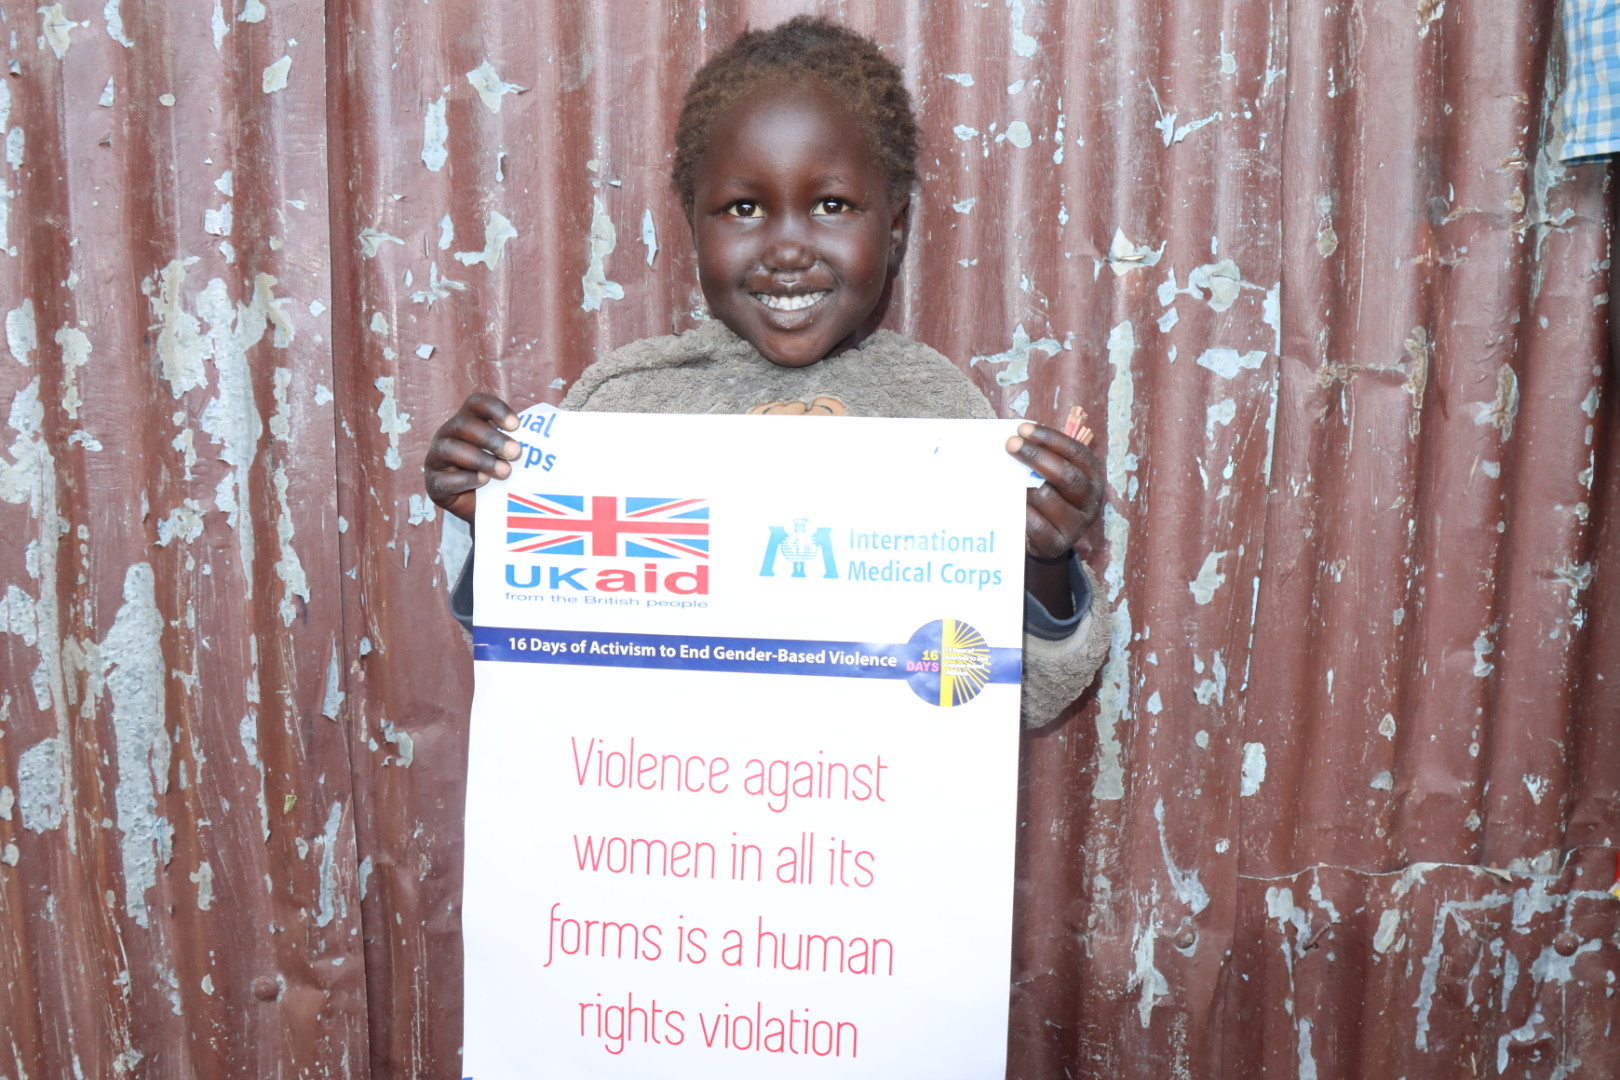 A child in Malakal participates in the 16 Days campaign.